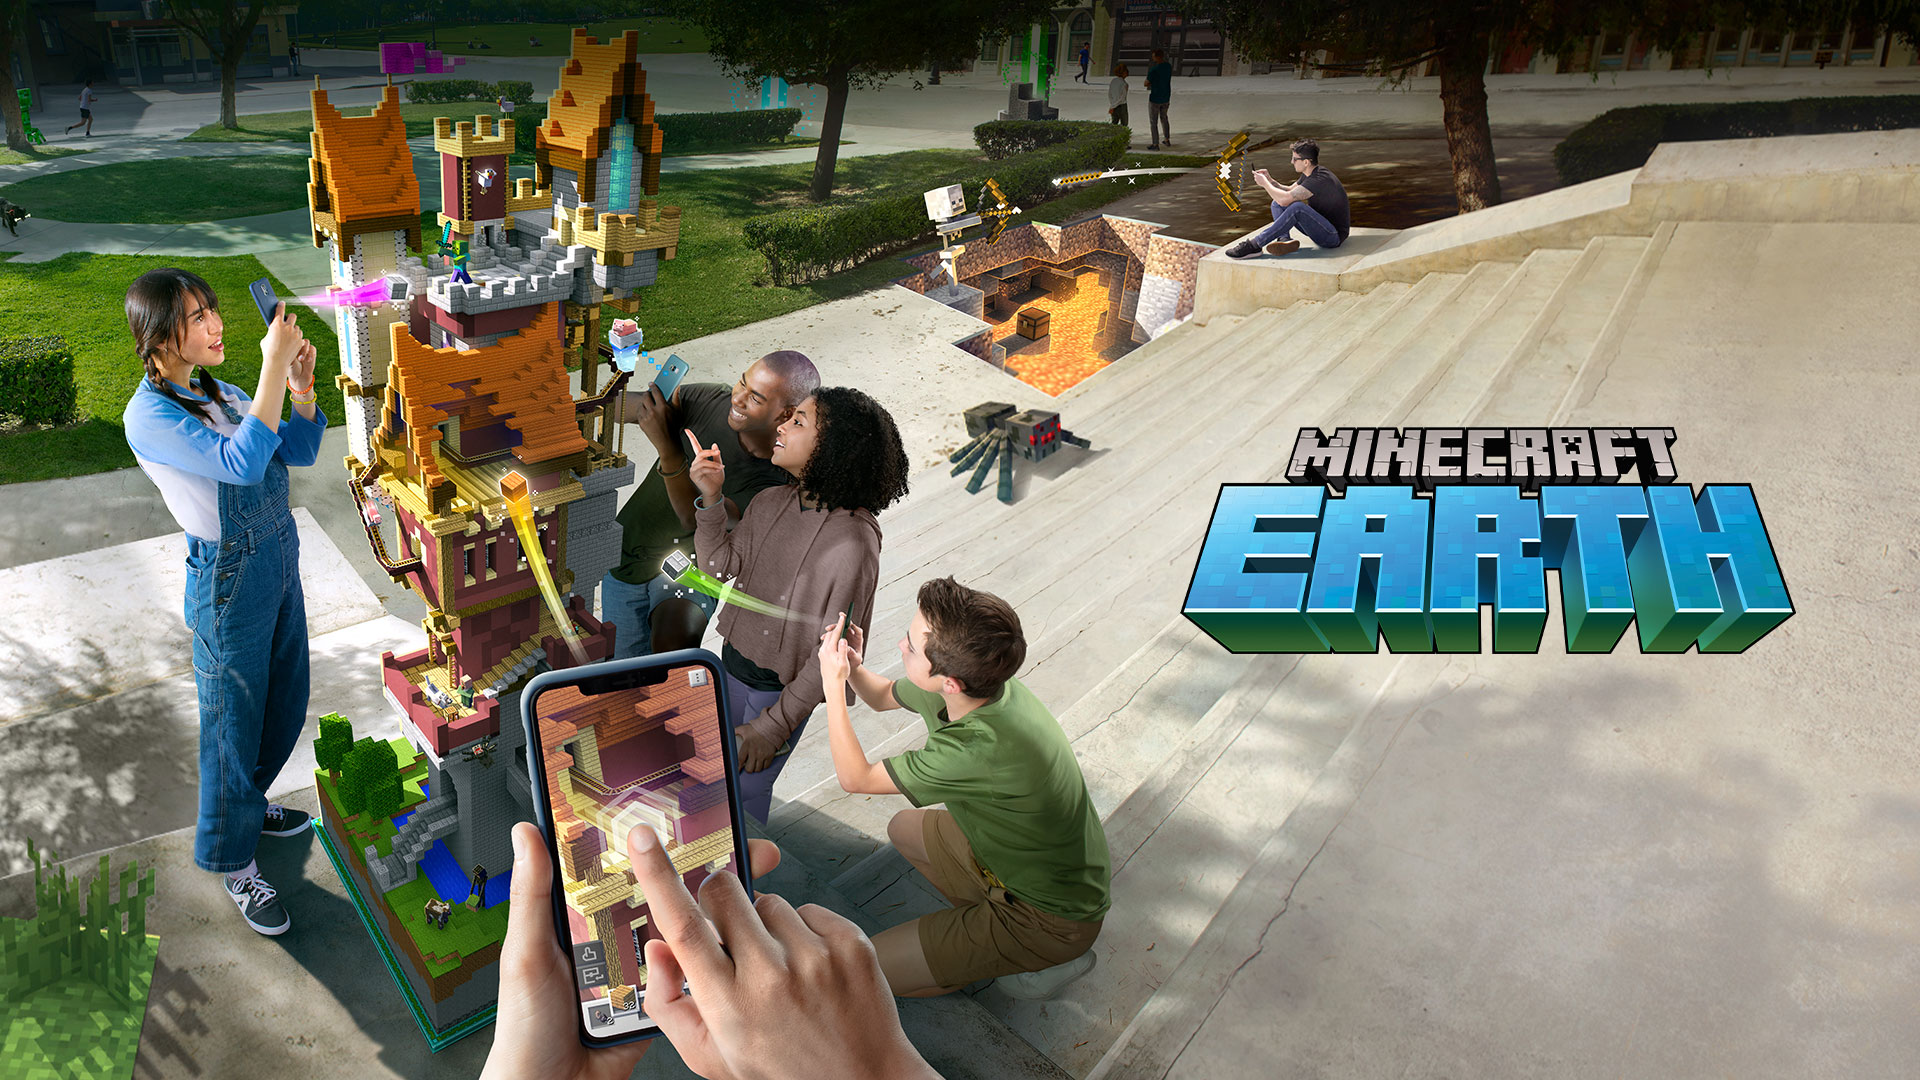 A group of people on the steps at a park playing Minecraft Earth on their mobile devices